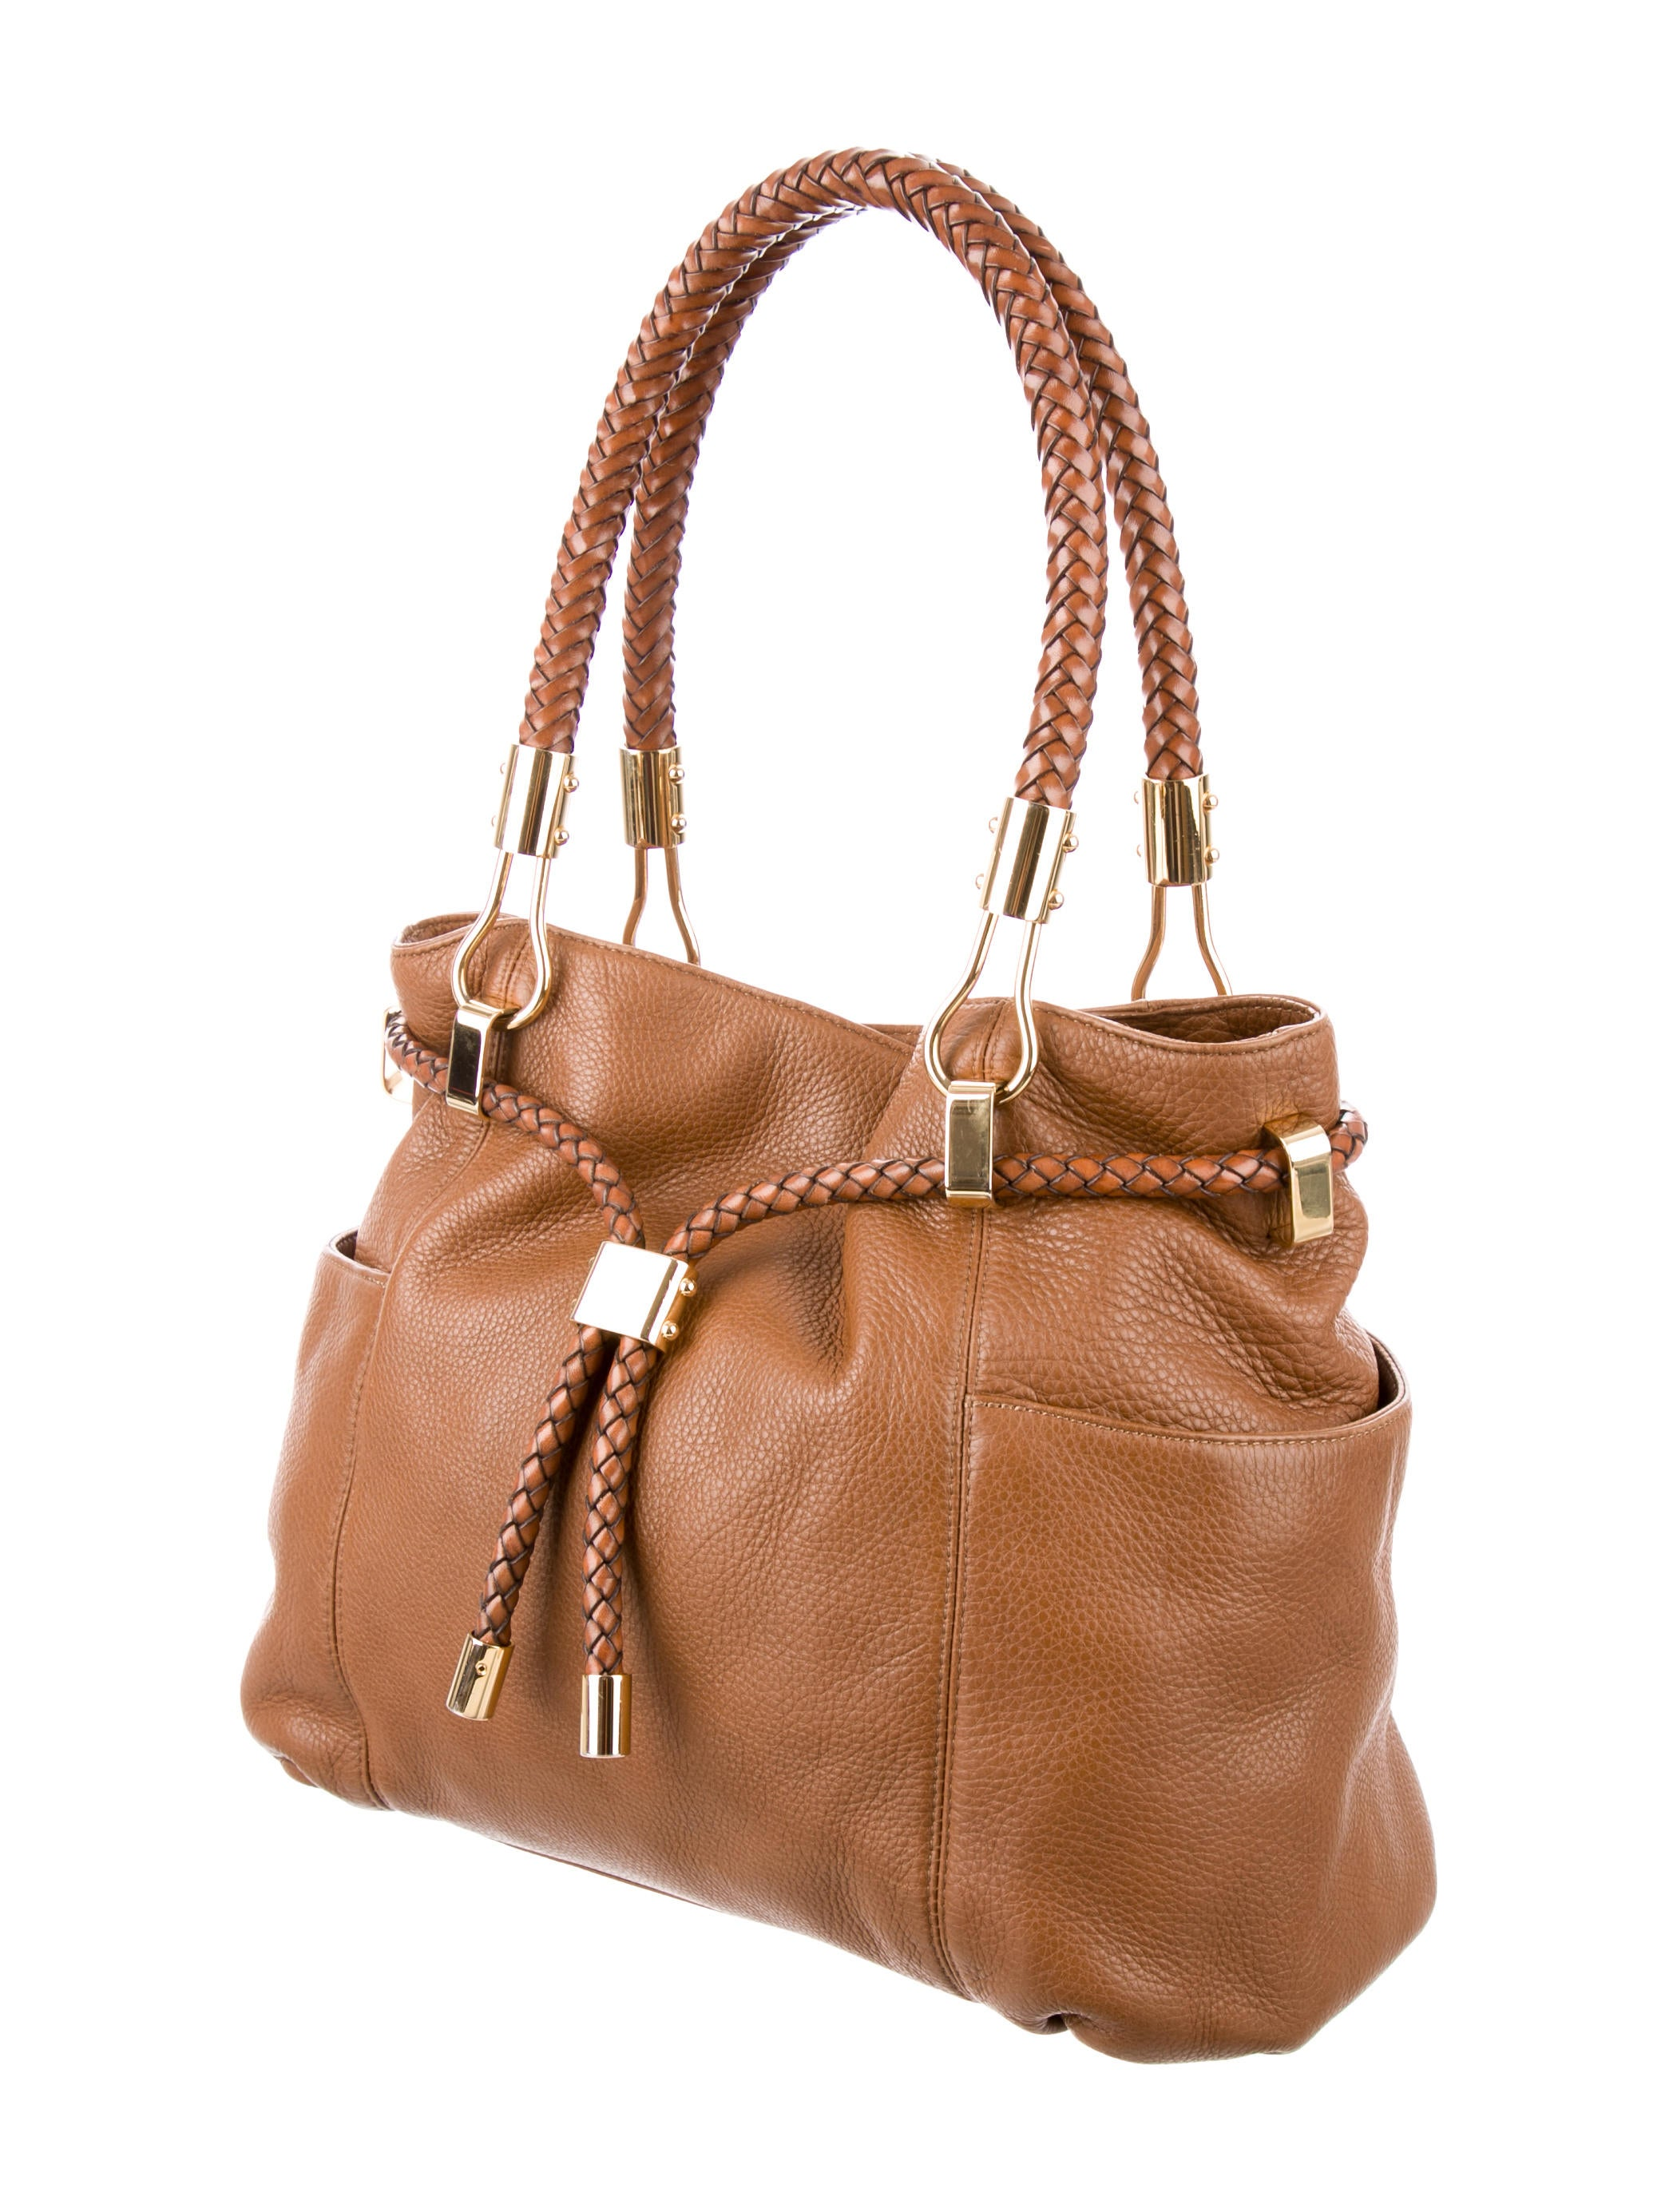 9ed3d17f796c Michael Kors Tote Bag With Side Pockets | Stanford Center for ...